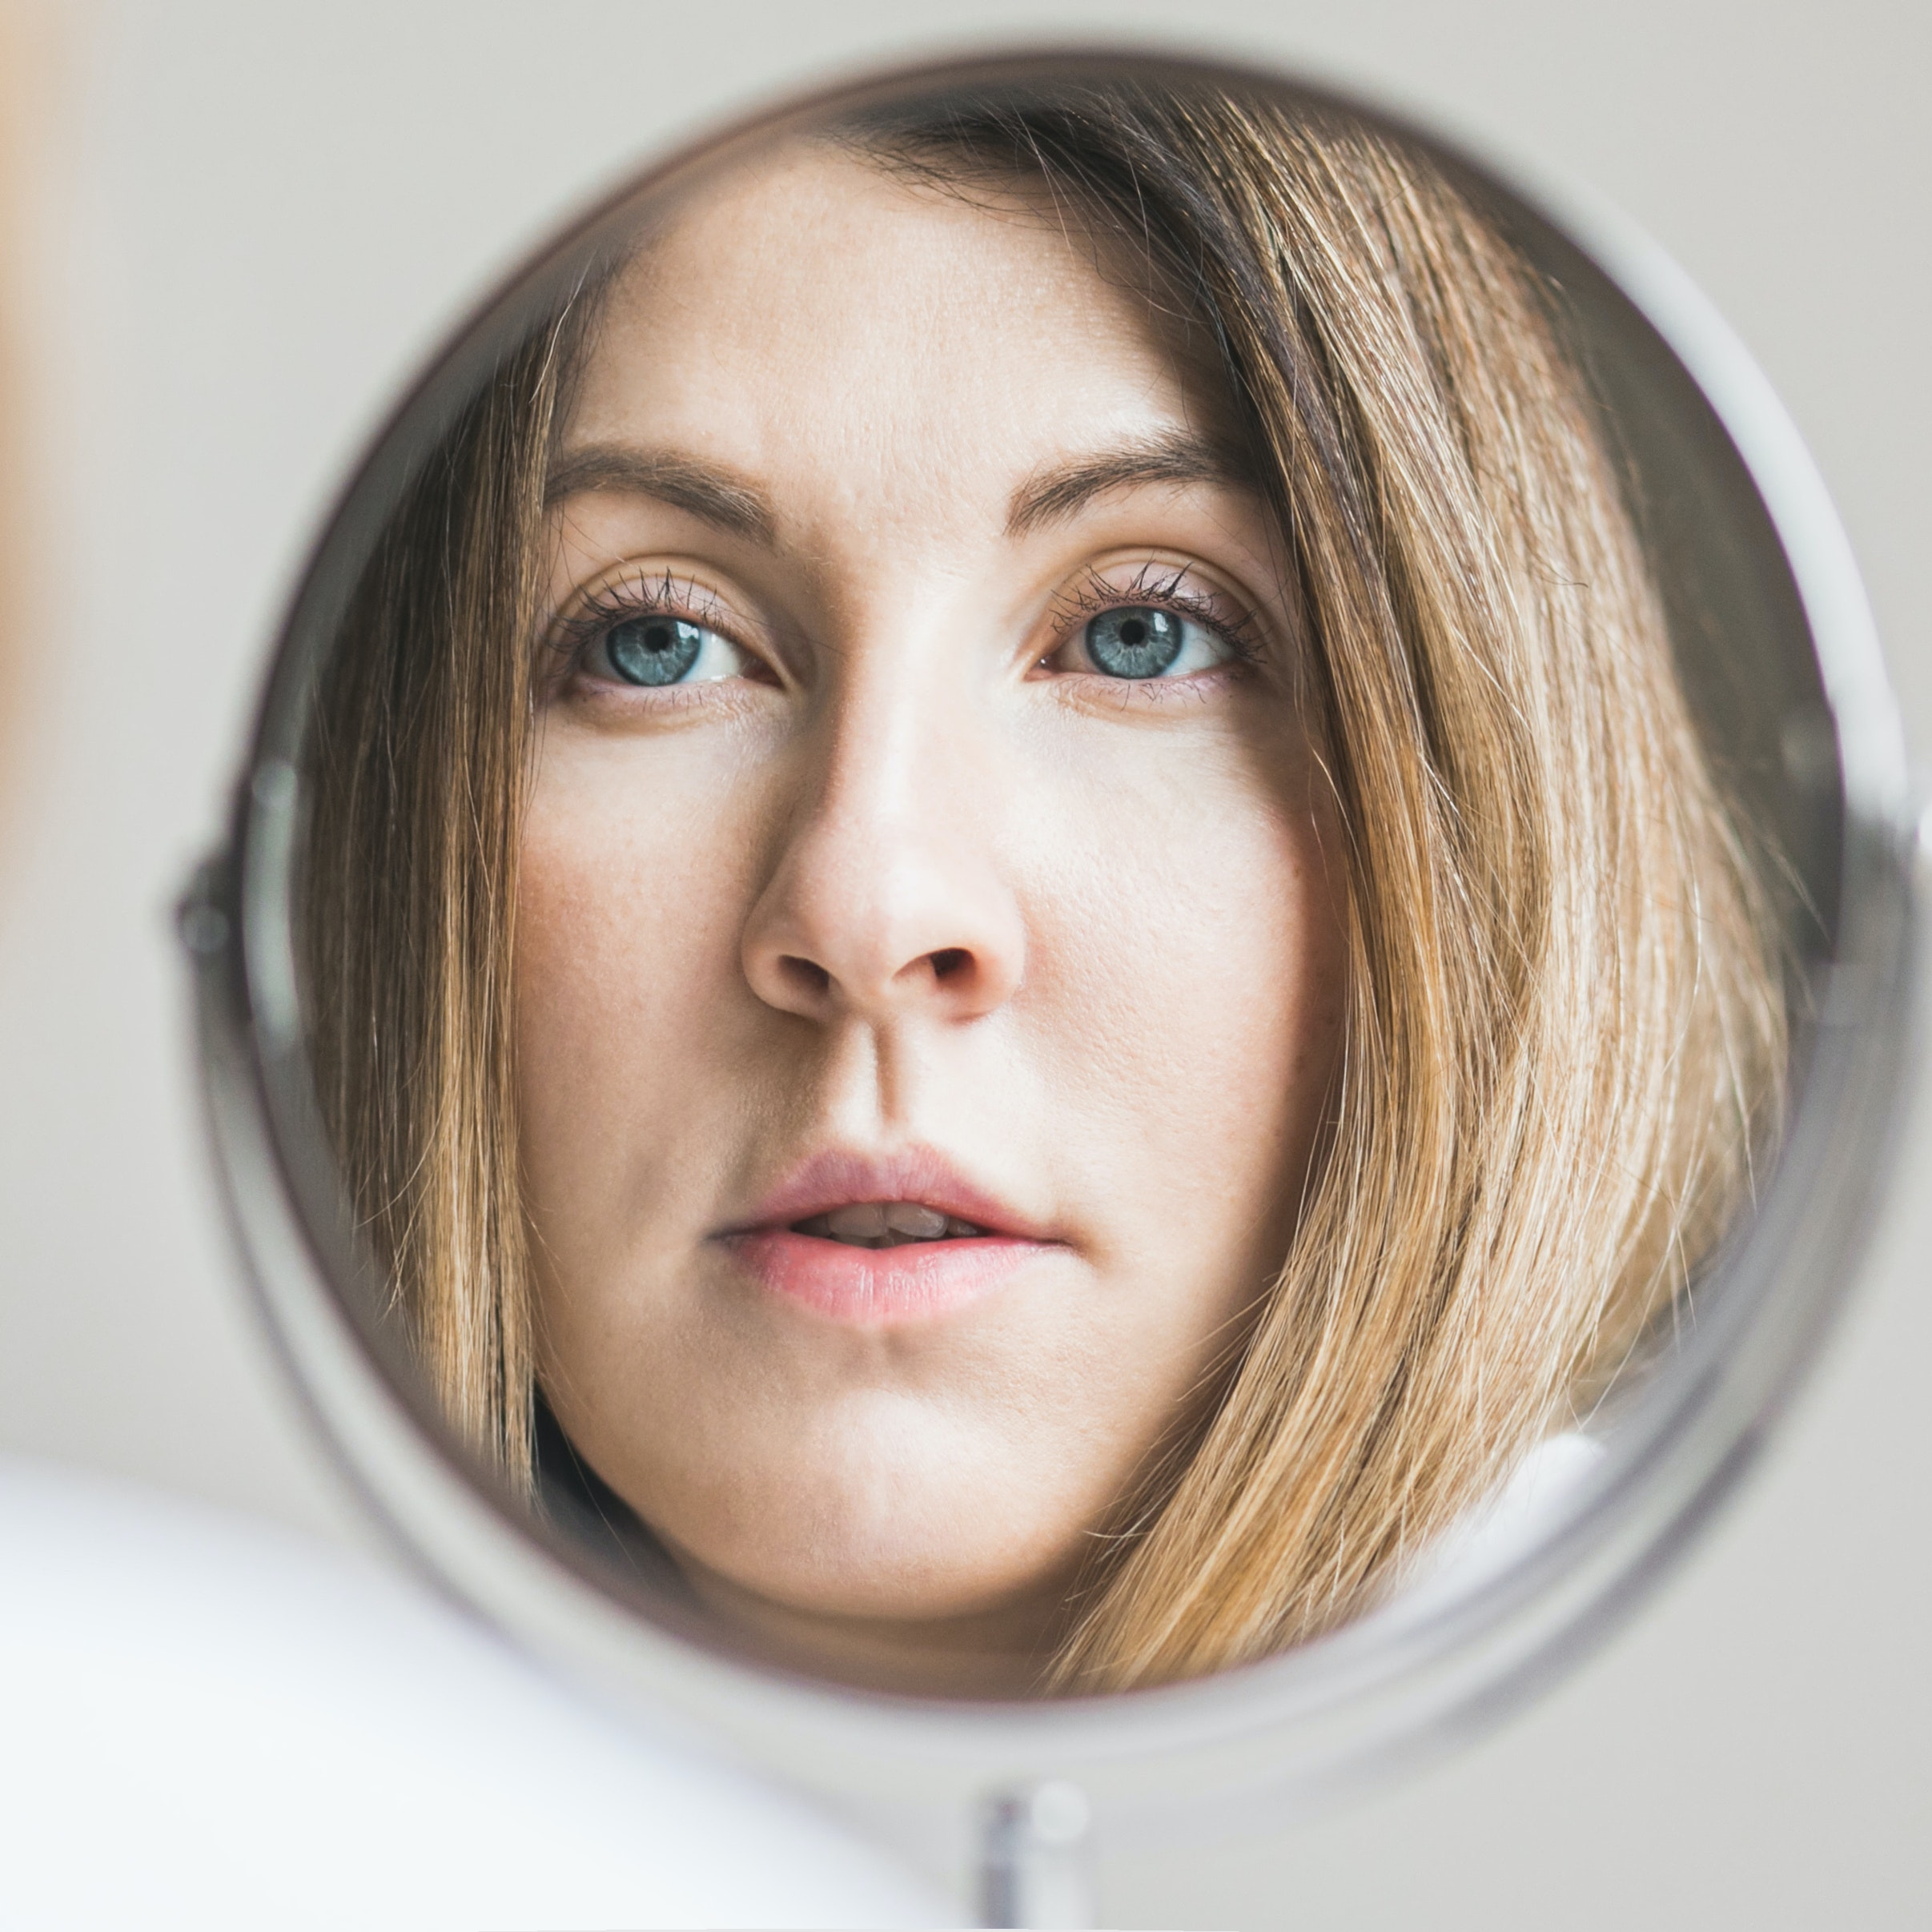 Love Magnifying Mirrors? How to Reduce Inflammation & Redness After Picking Skin On Your Face